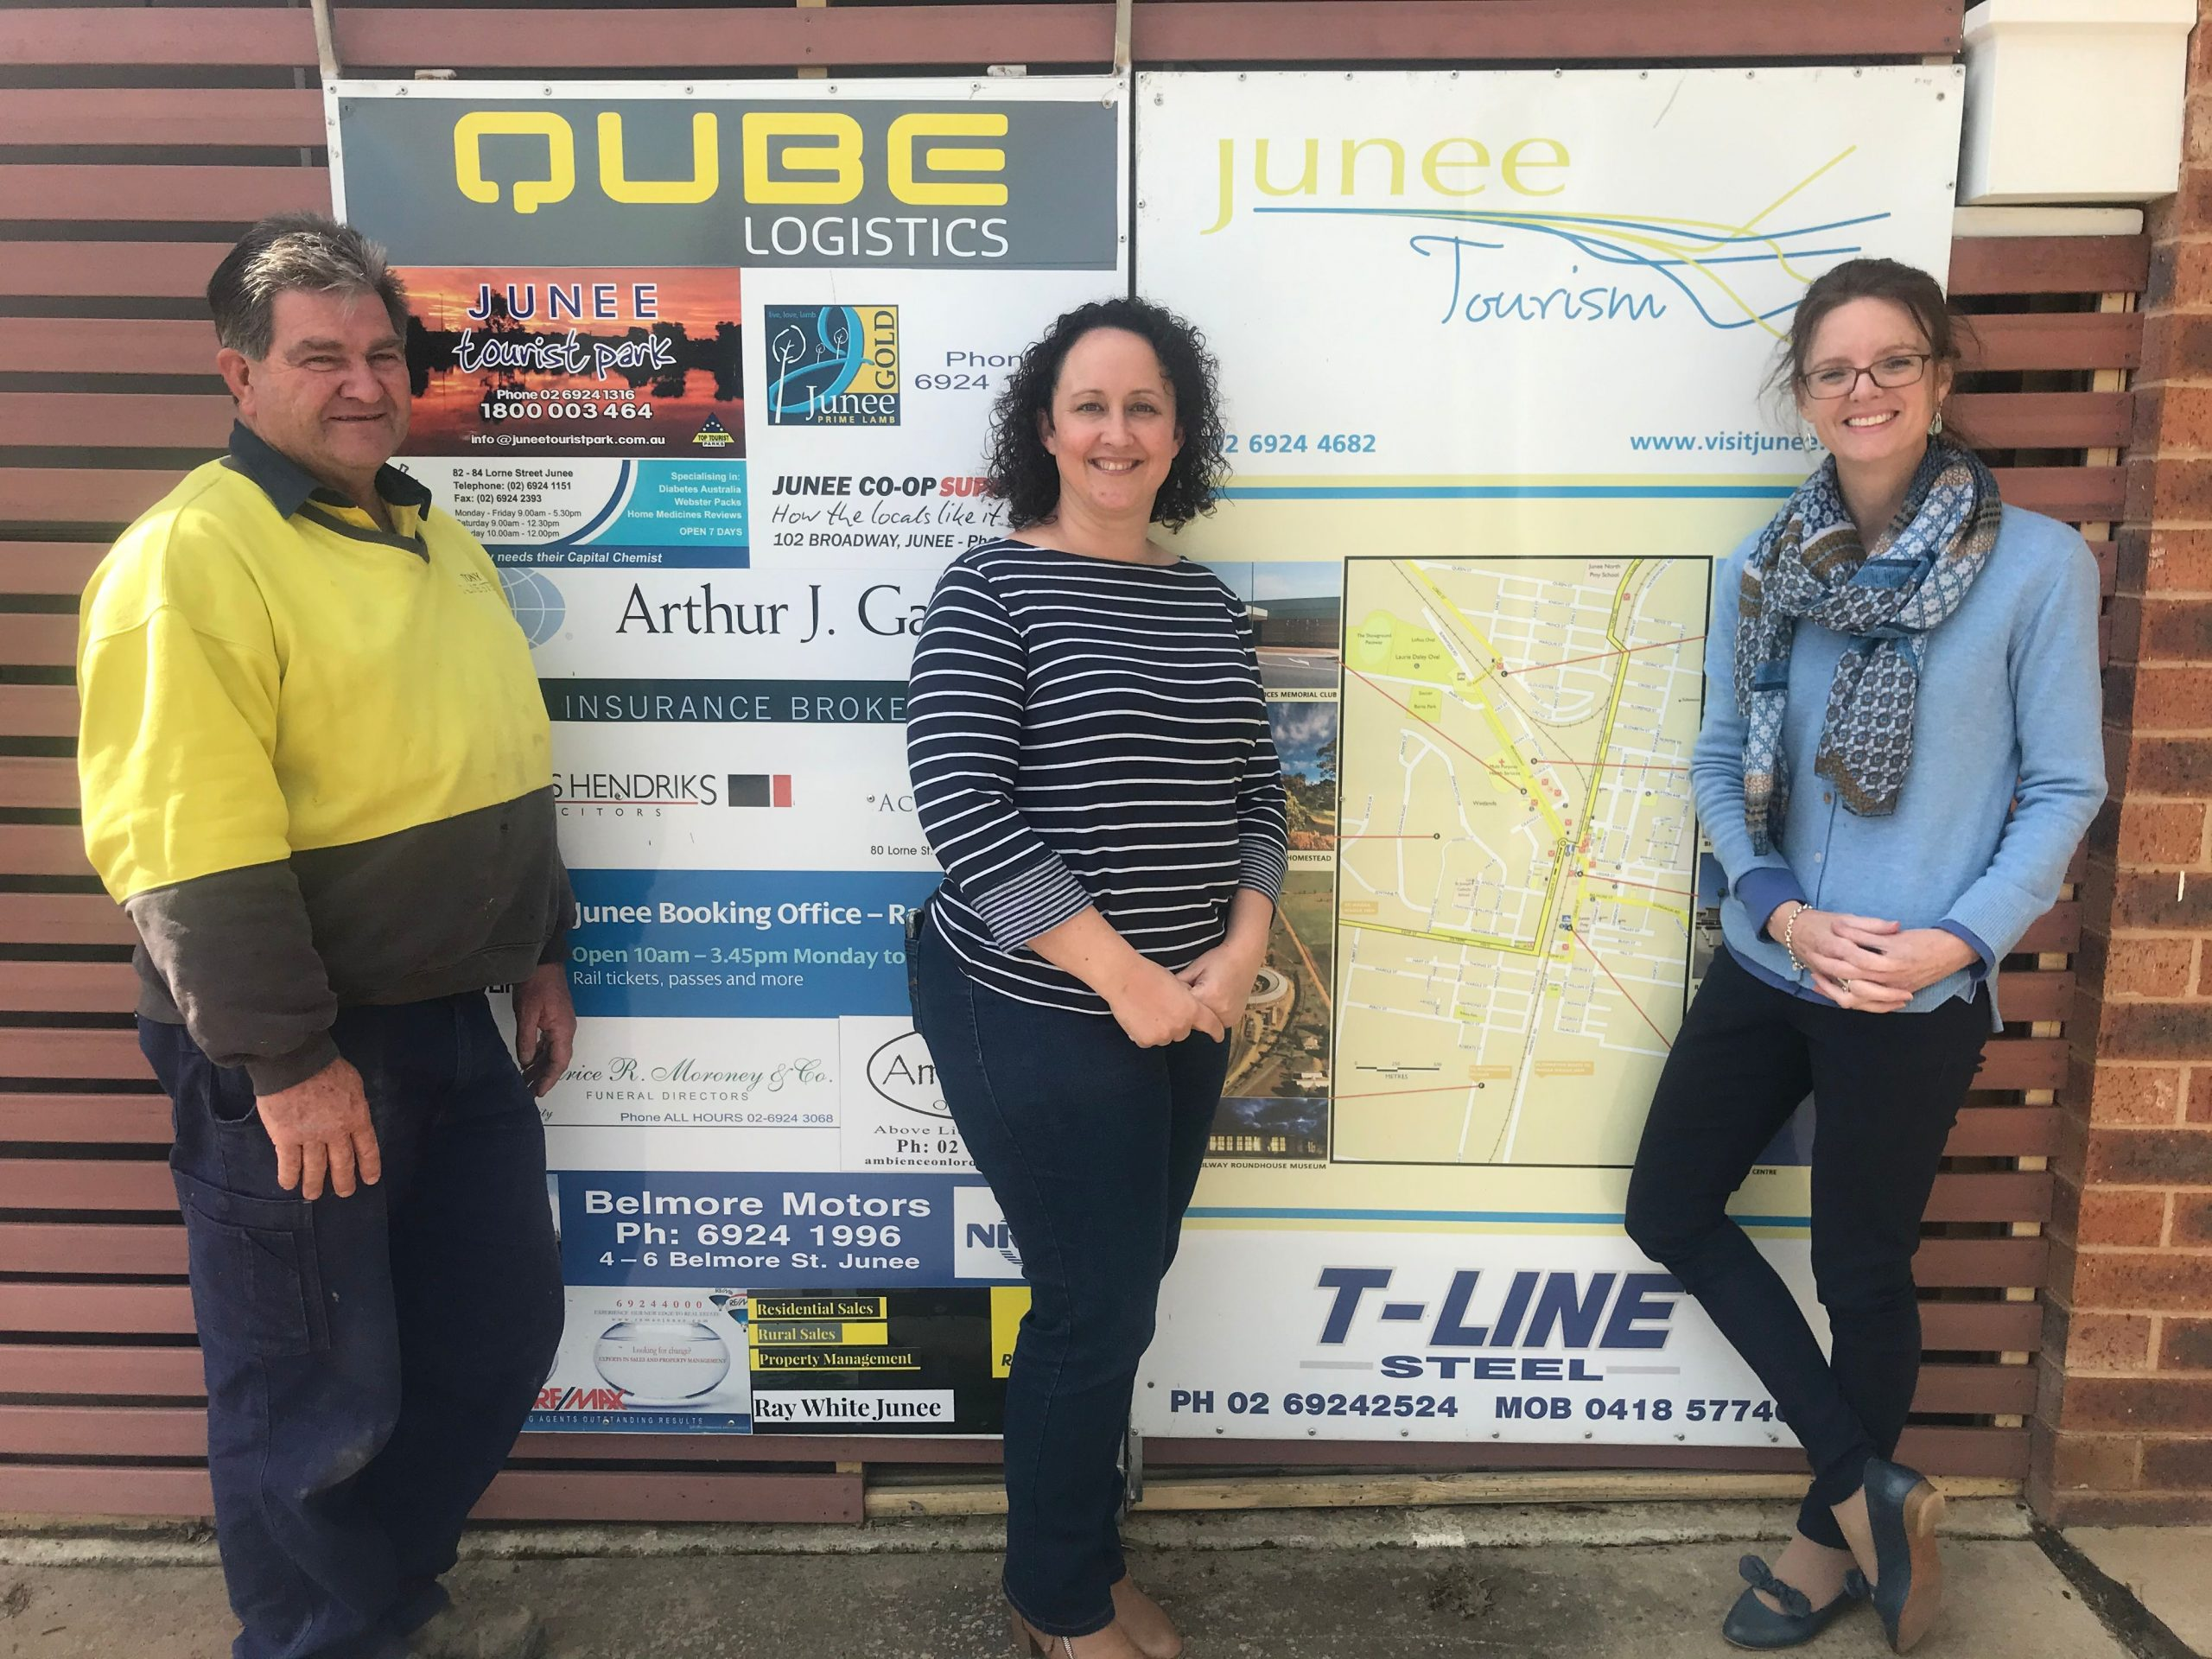 Tony Butt, Natalie Phillips from Junee Business and Trades with Steph Cooke MP leane against a tourism map of Junee and smile at the camera.